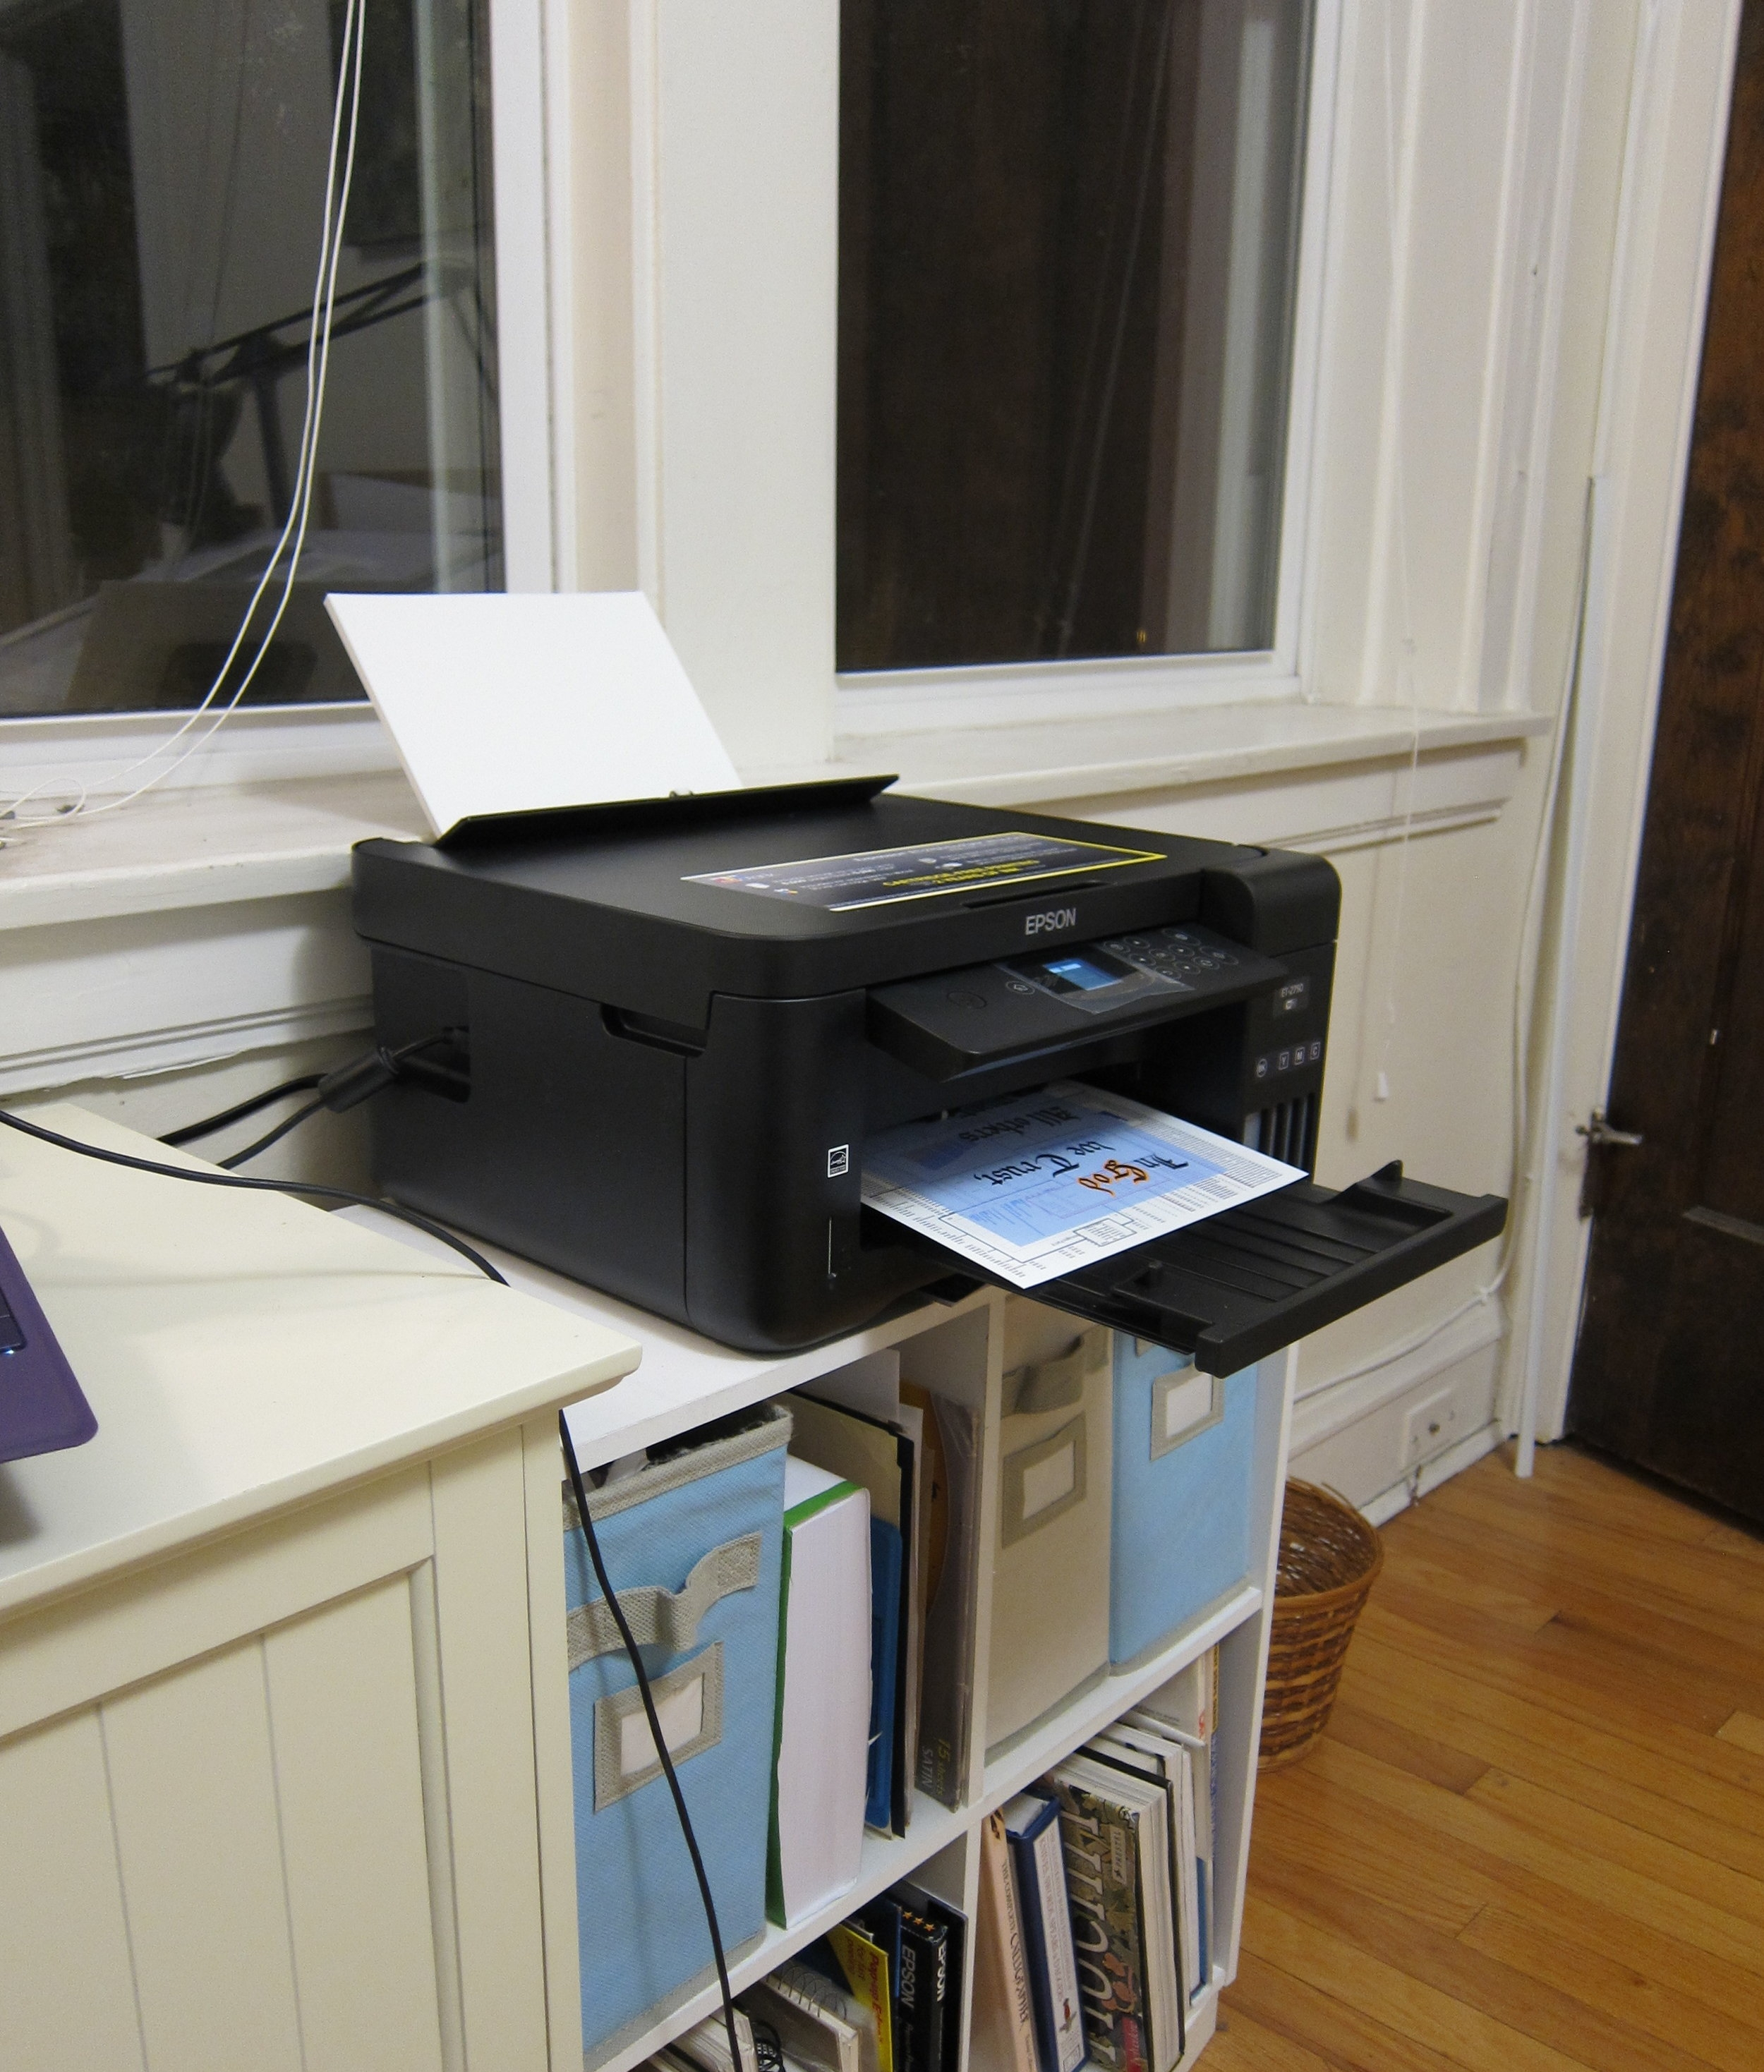 The new printer calmly doing its job.  [Image shows a printer on top of a bookshelf with a print half completed coming out of it]